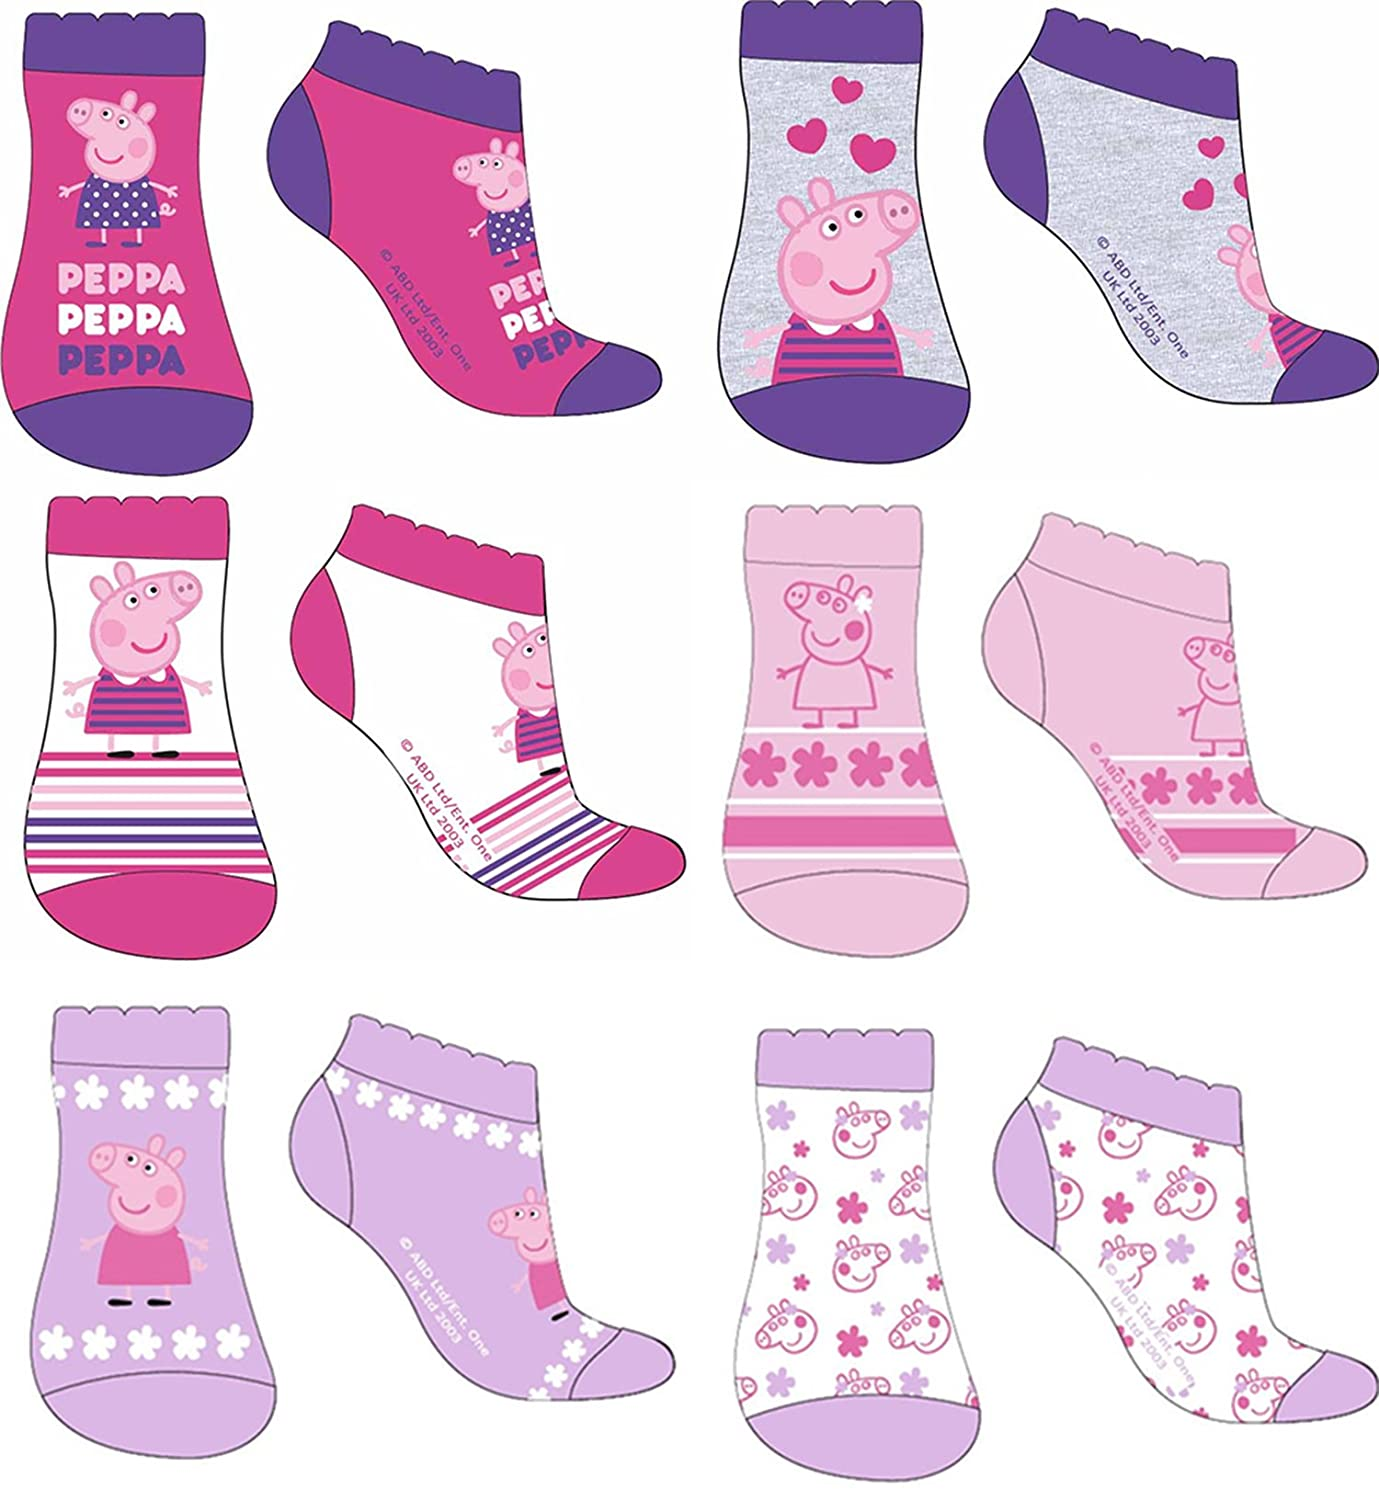 Girls Peppa Pig Socks - Cotton - Pack of 6